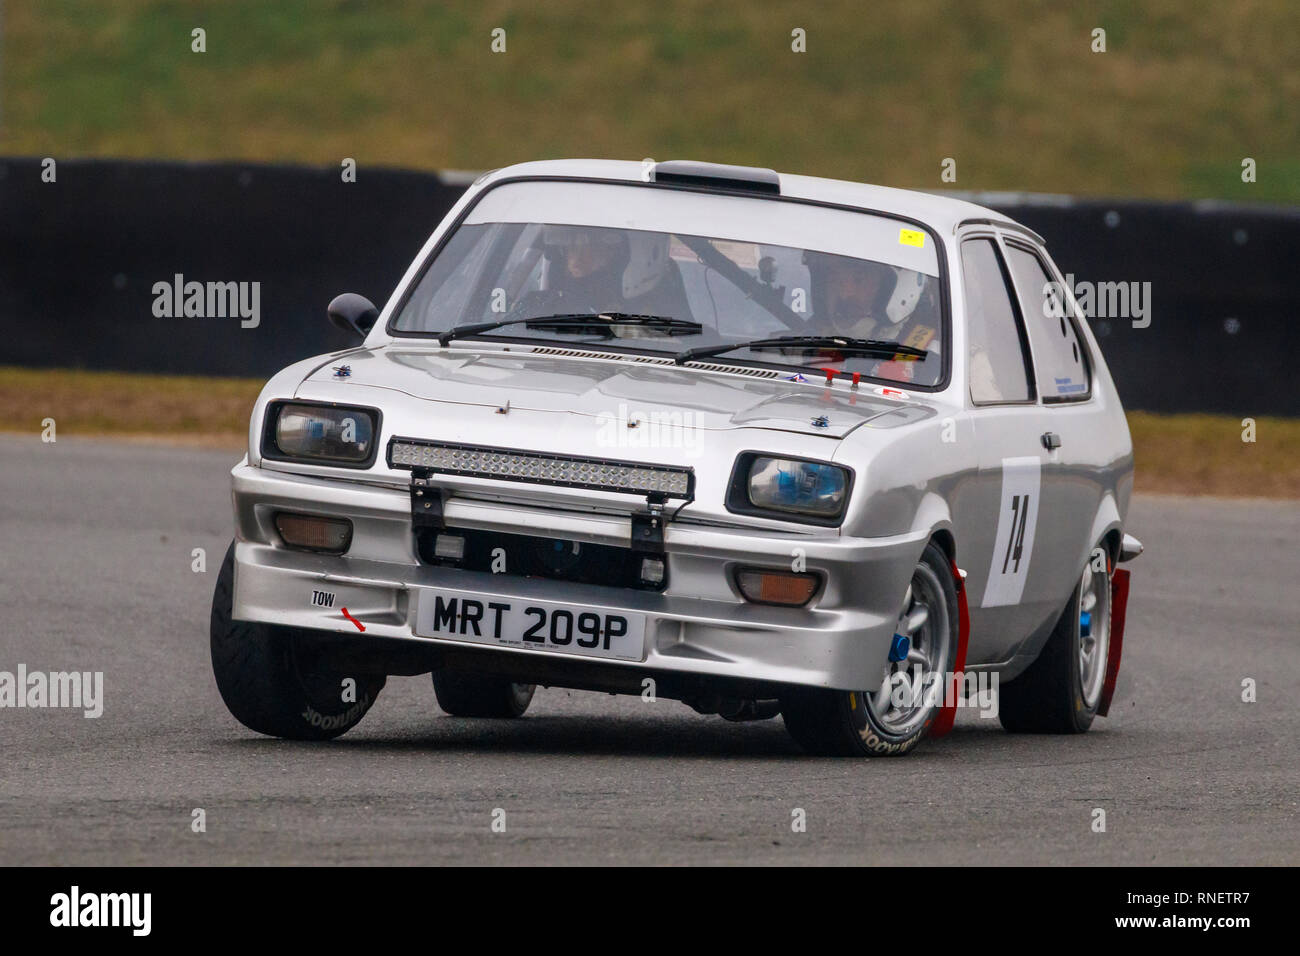 Vauxhall Chevette, MRT 209P, with driver Mark Wade and co-driver Jonathan Williams during the 2019 Snetterton Stage Rally, Norfolk. - Stock Image